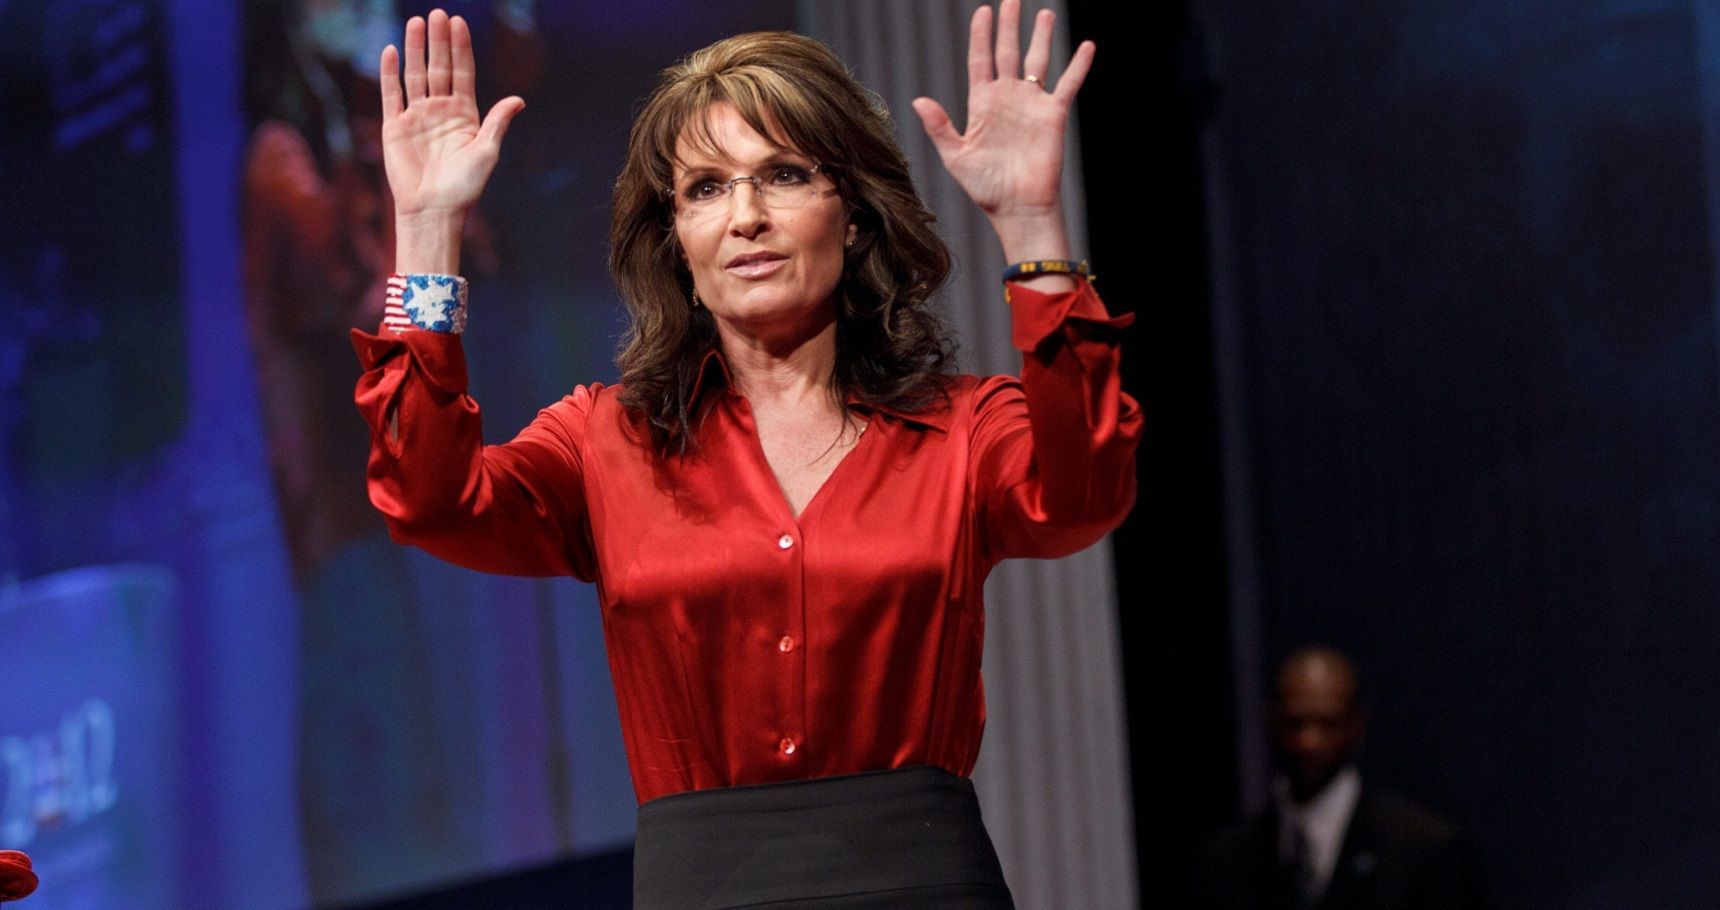 15 Shocking Things You Didn't Know About Sarah Palin